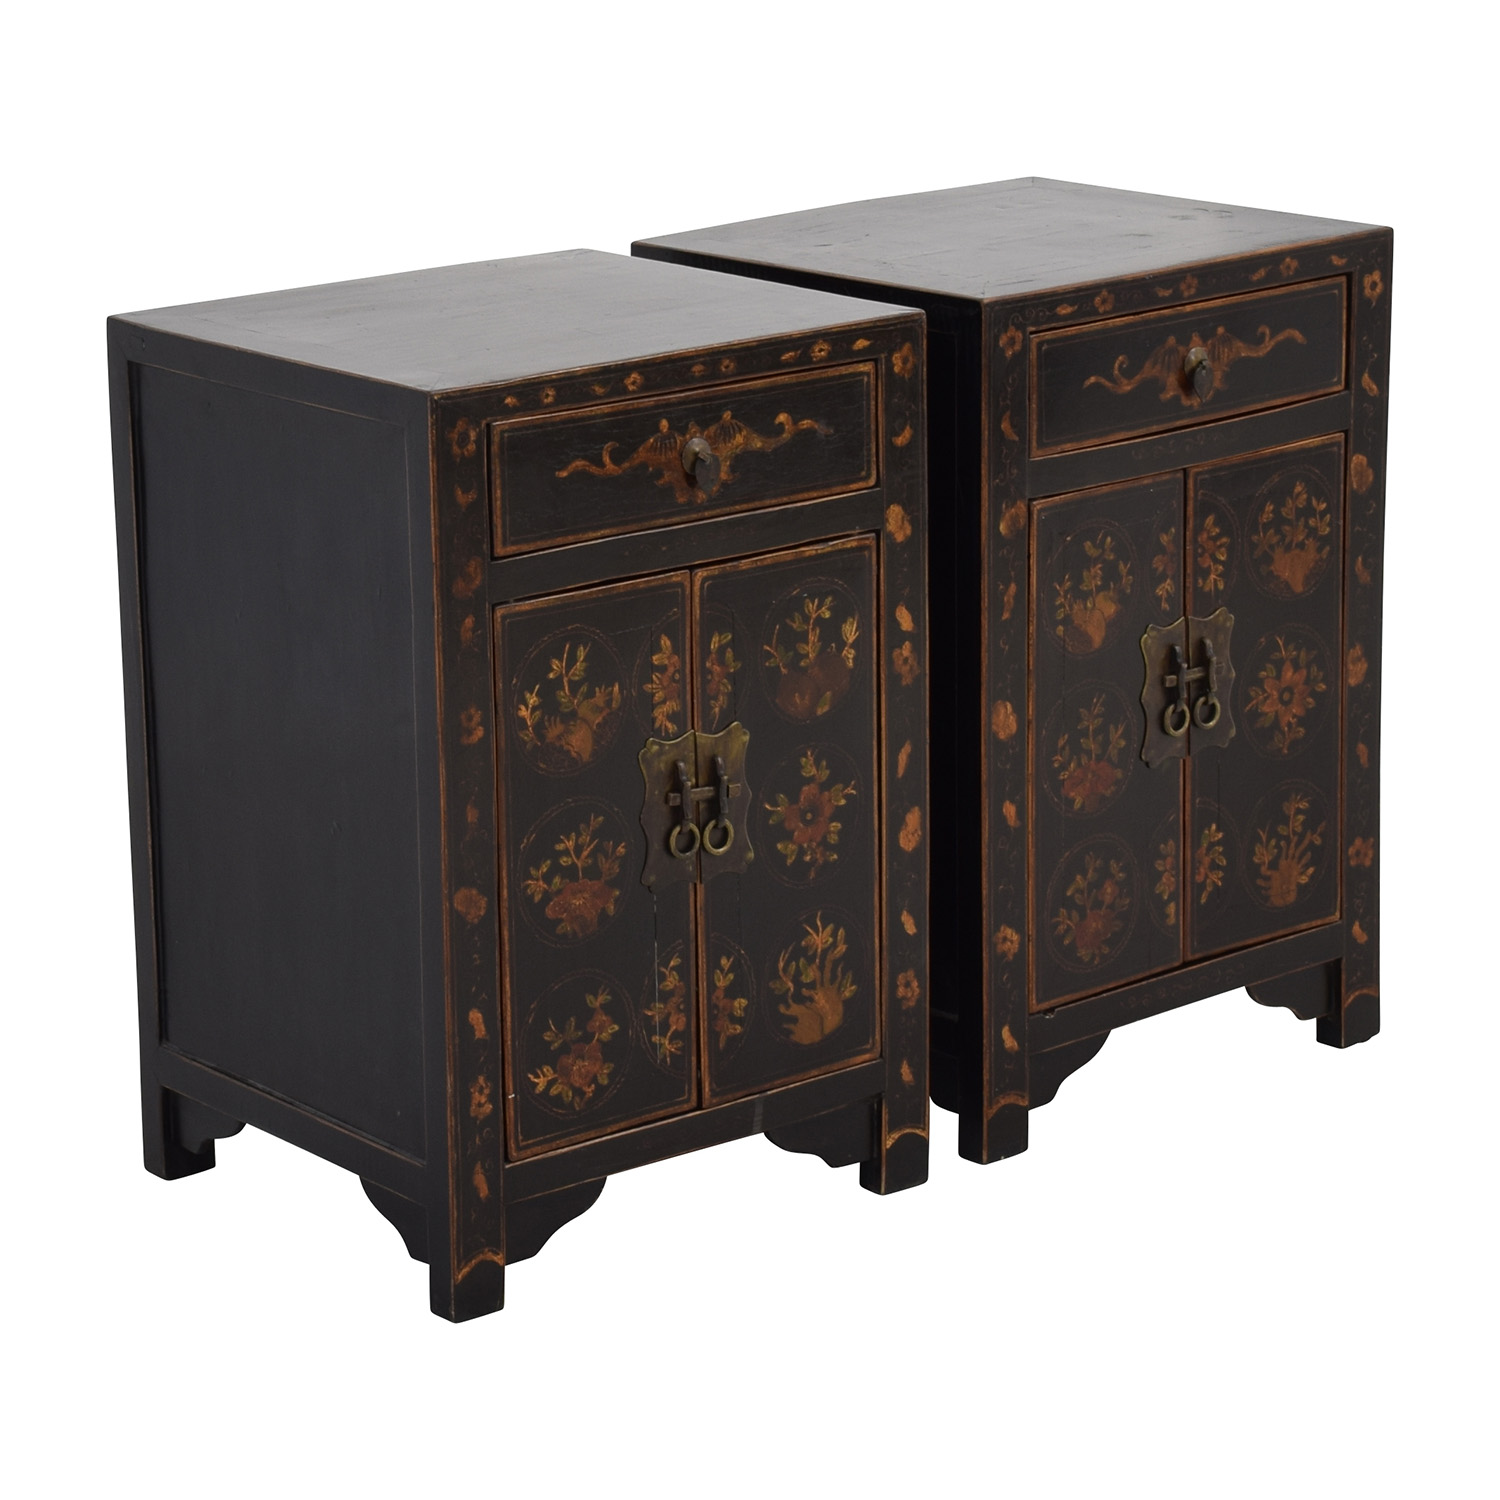 Off antique wood side tables with floral design